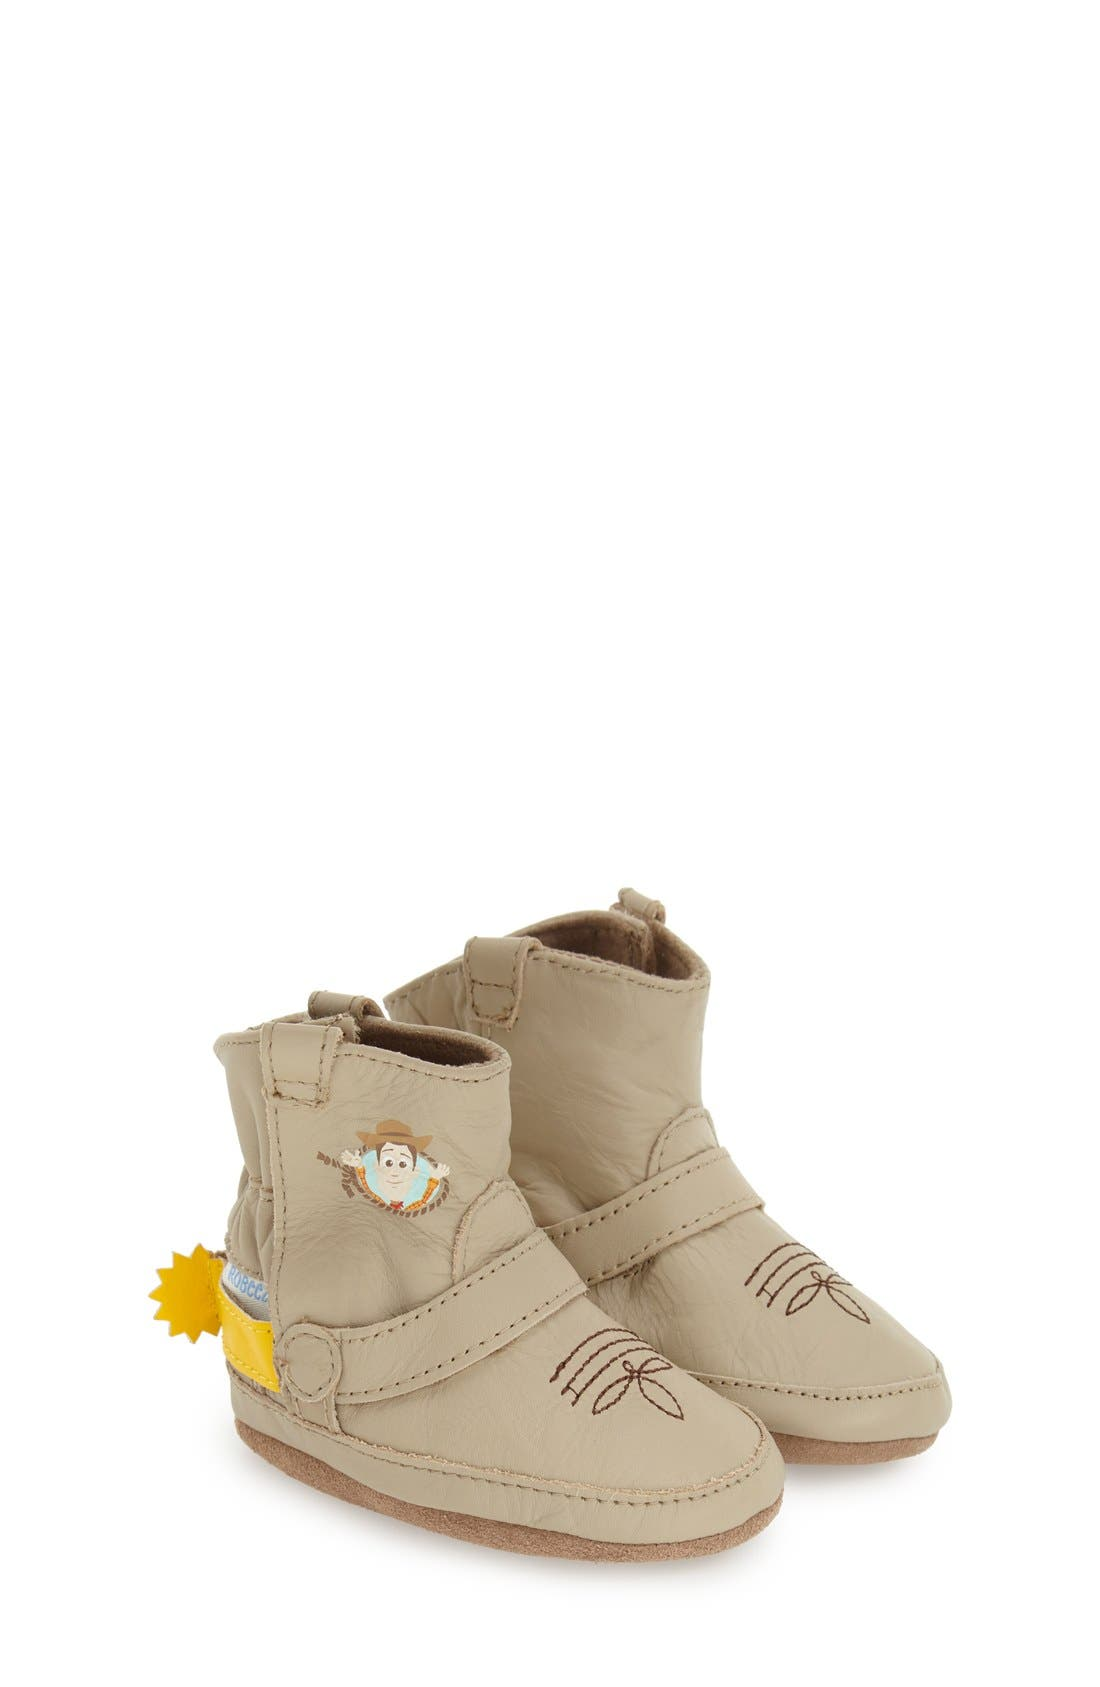 'Disney<sup>®</sup> Woody<sup>®</sup> Bootie' Crib Shoe,                         Main,                         color,